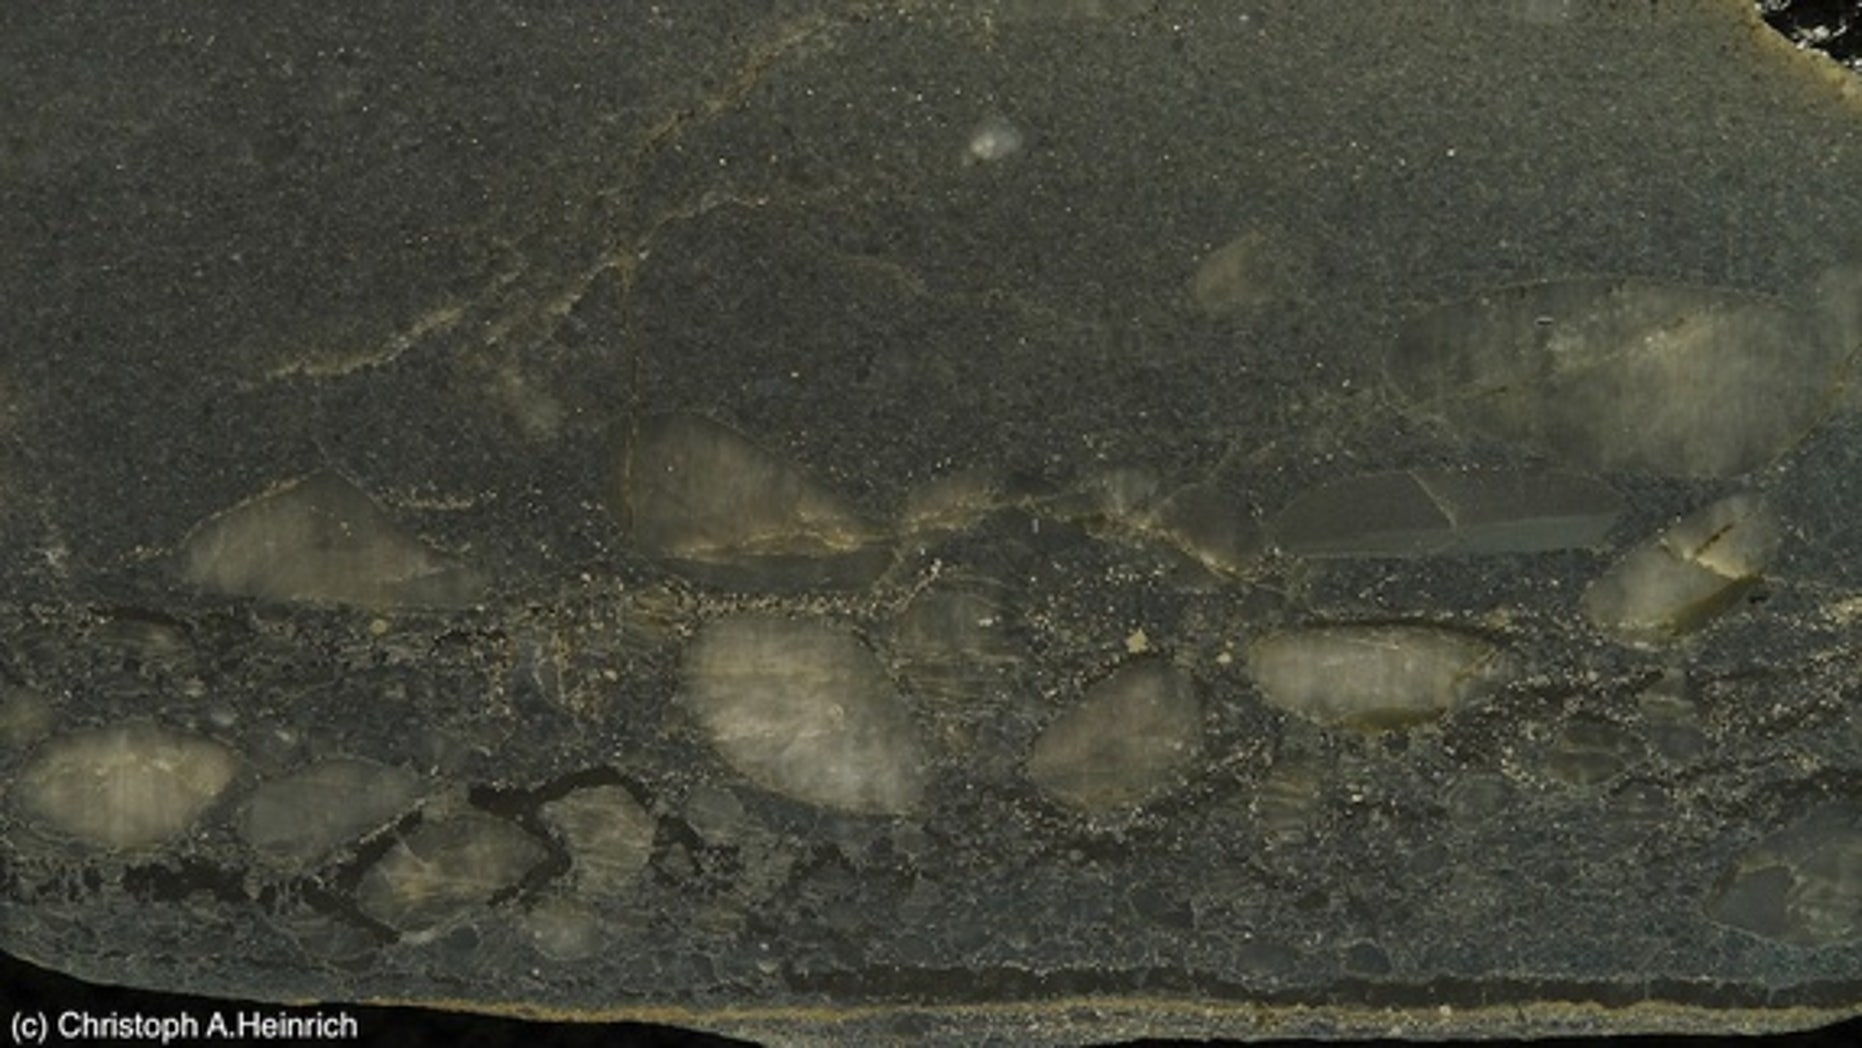 A layer from a reef found in the Witwatersrand deposit. The black carbon layer contains bonanza-grade gold as tiny inclusions, as well as pyrite and quartz pebbles.  The base is formed from an ancient microbial mat. A new theory proposes that a